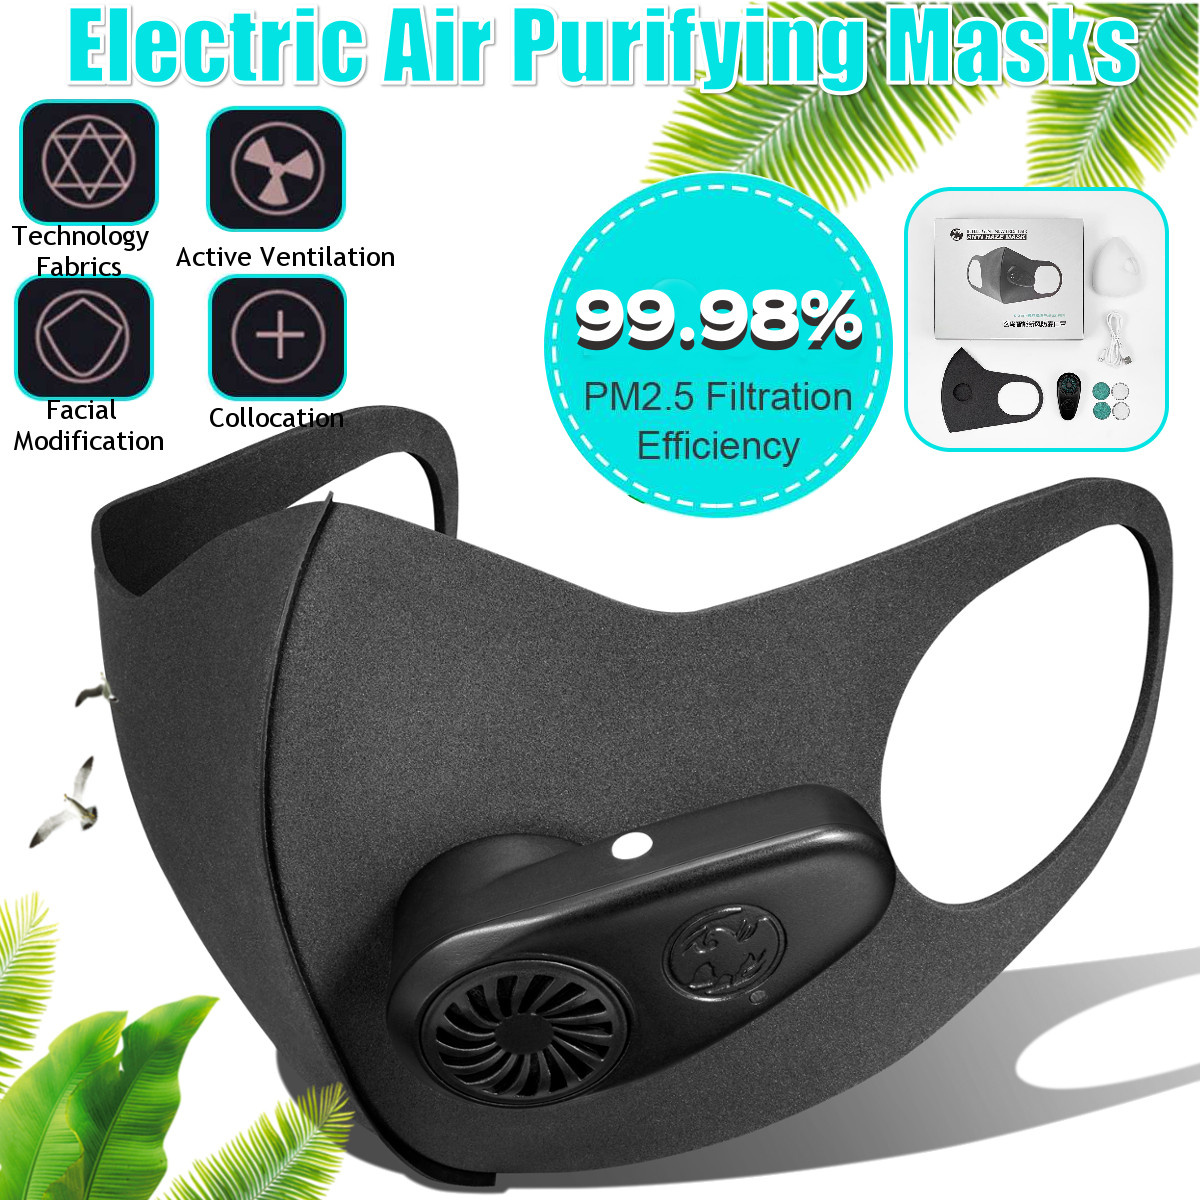 Smart Electric Face Dust Mask Air Purifying N95 Anti Dust Pollution PM2.5 With Breathable Valve Workplace Safe Fresh Air Supply